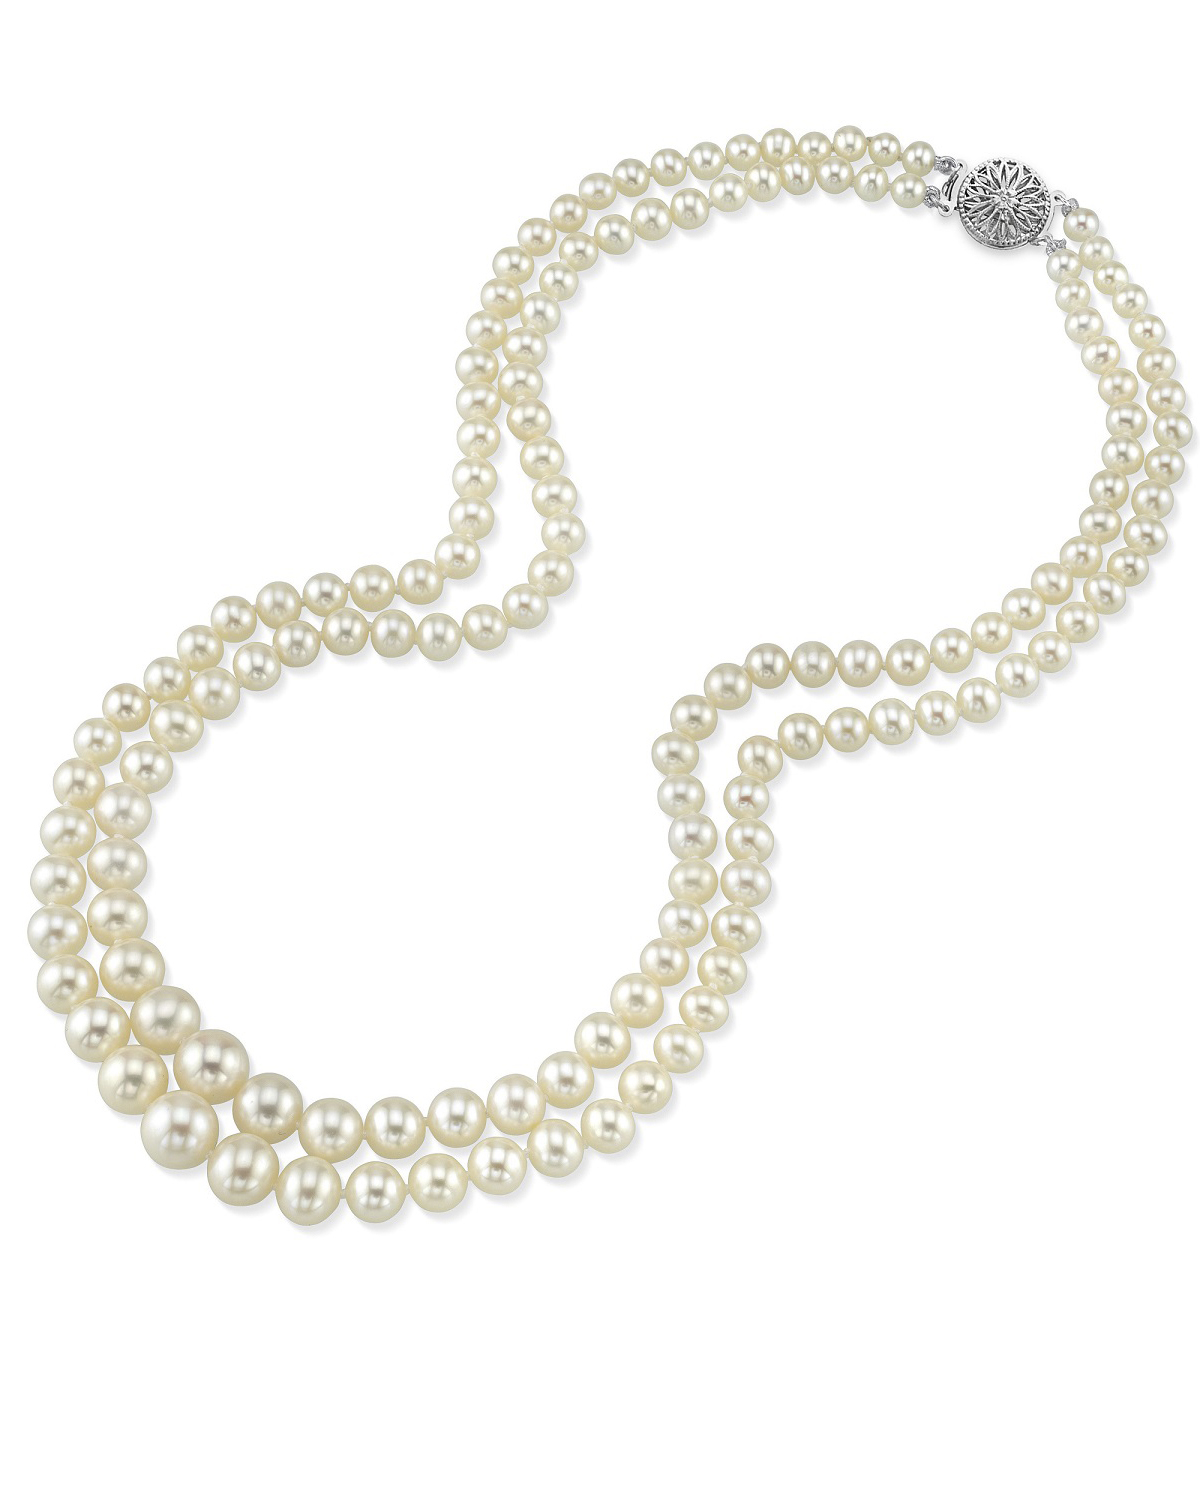 4.0-8.0mm White Freshwater Pearl Double Strand Necklace